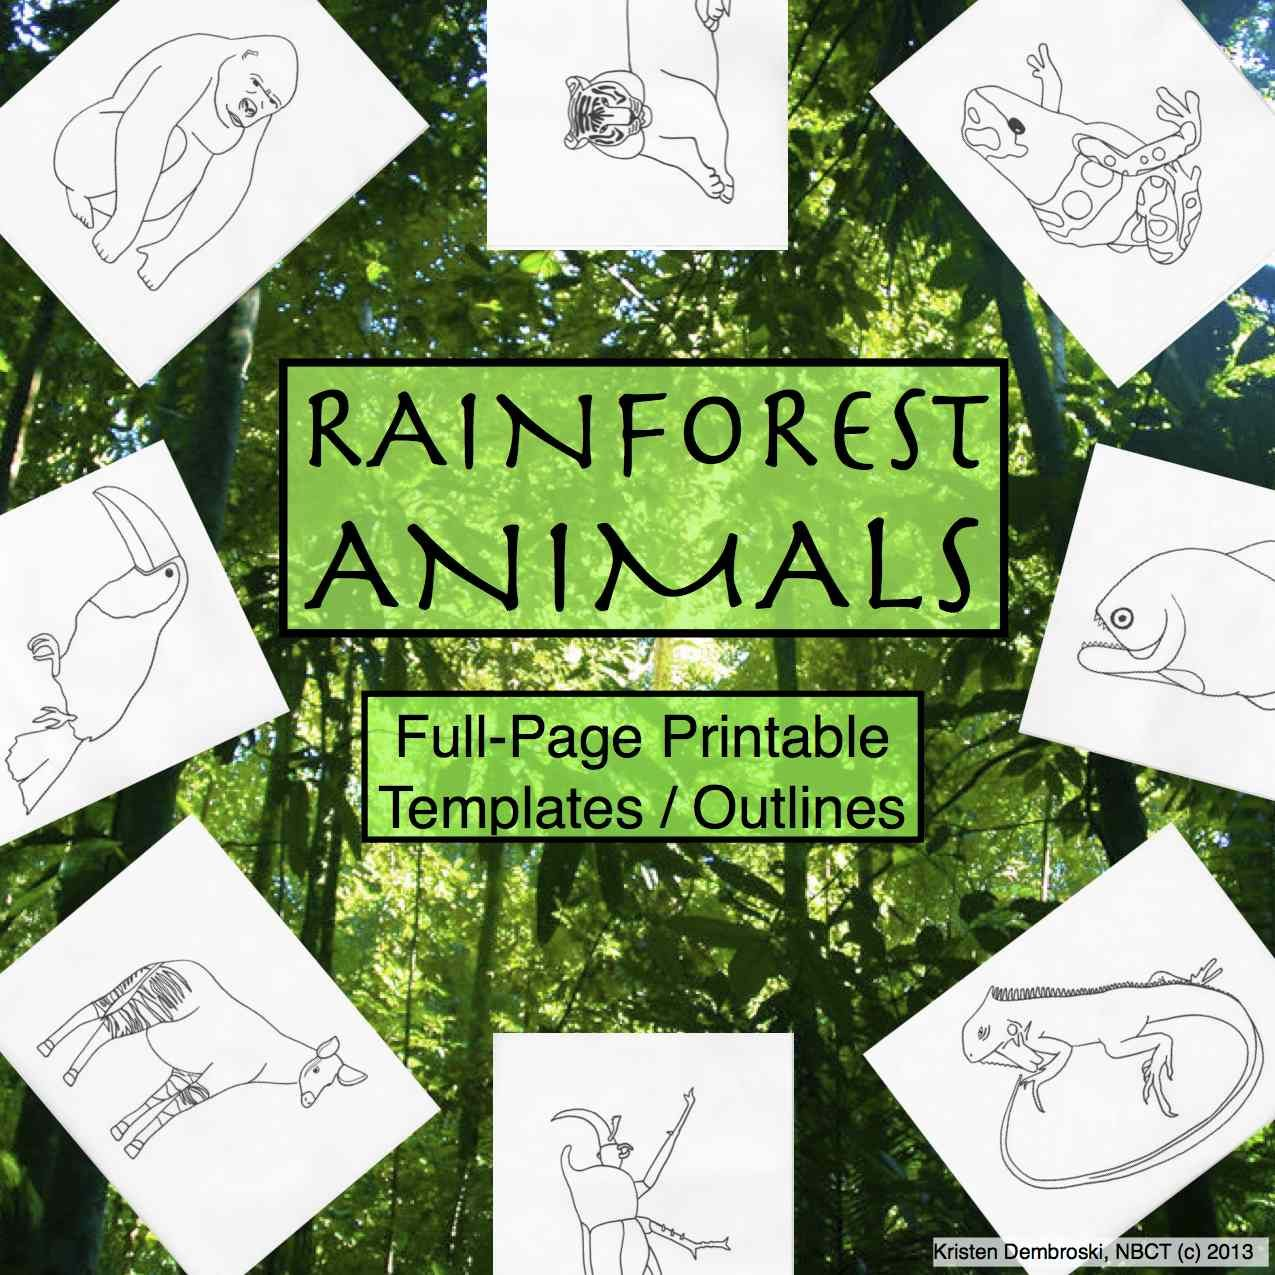 Rainforest Animals Printable Full Page Outlines